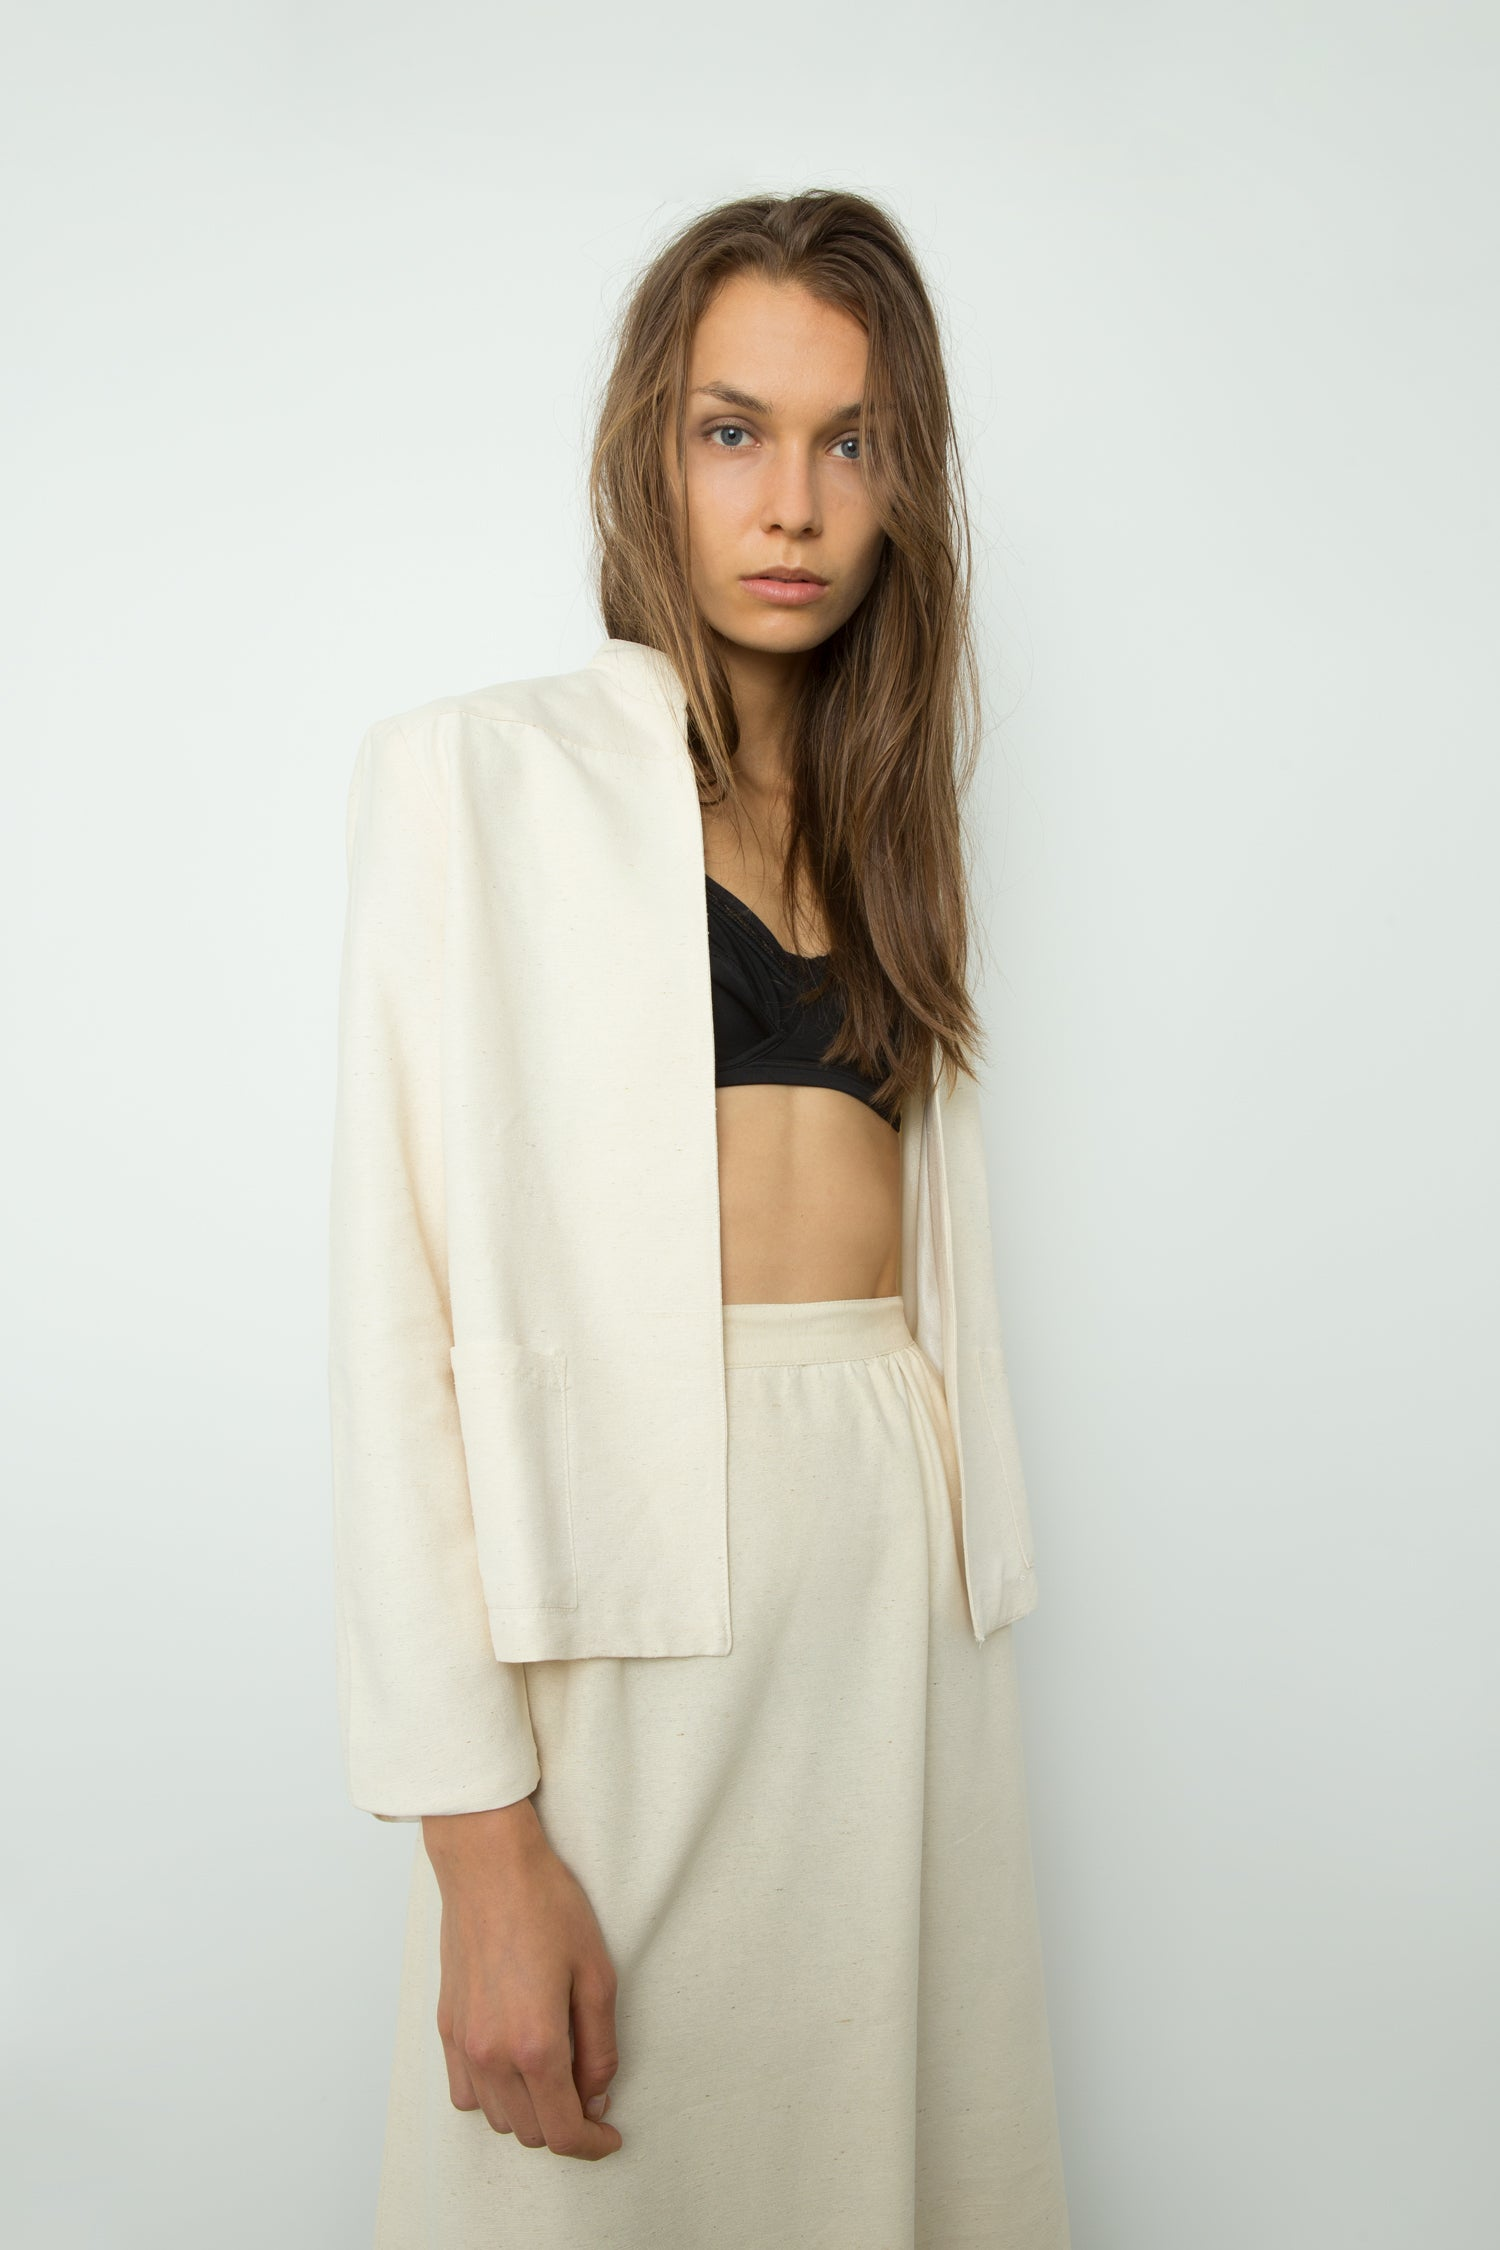 RAW SILK SKIRT SUIT